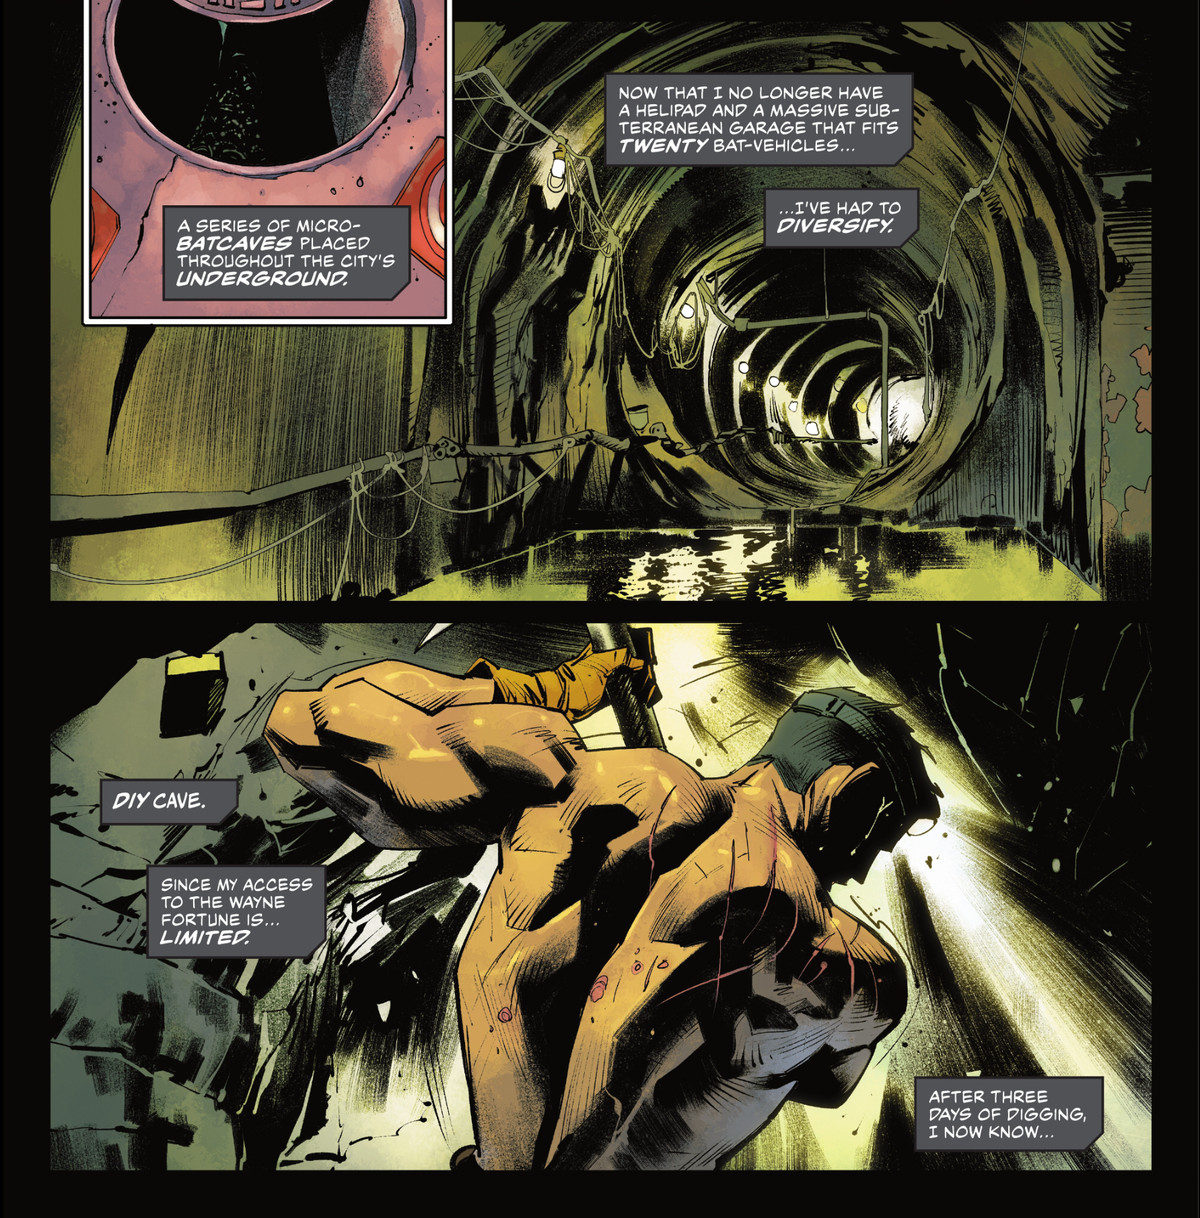 """Batman works on his """"series of micro-Batcaves placed throughout the city's underground,"""" digging shirtless in a sewer, in Detective Comics #1034, DC Comics (2021)."""